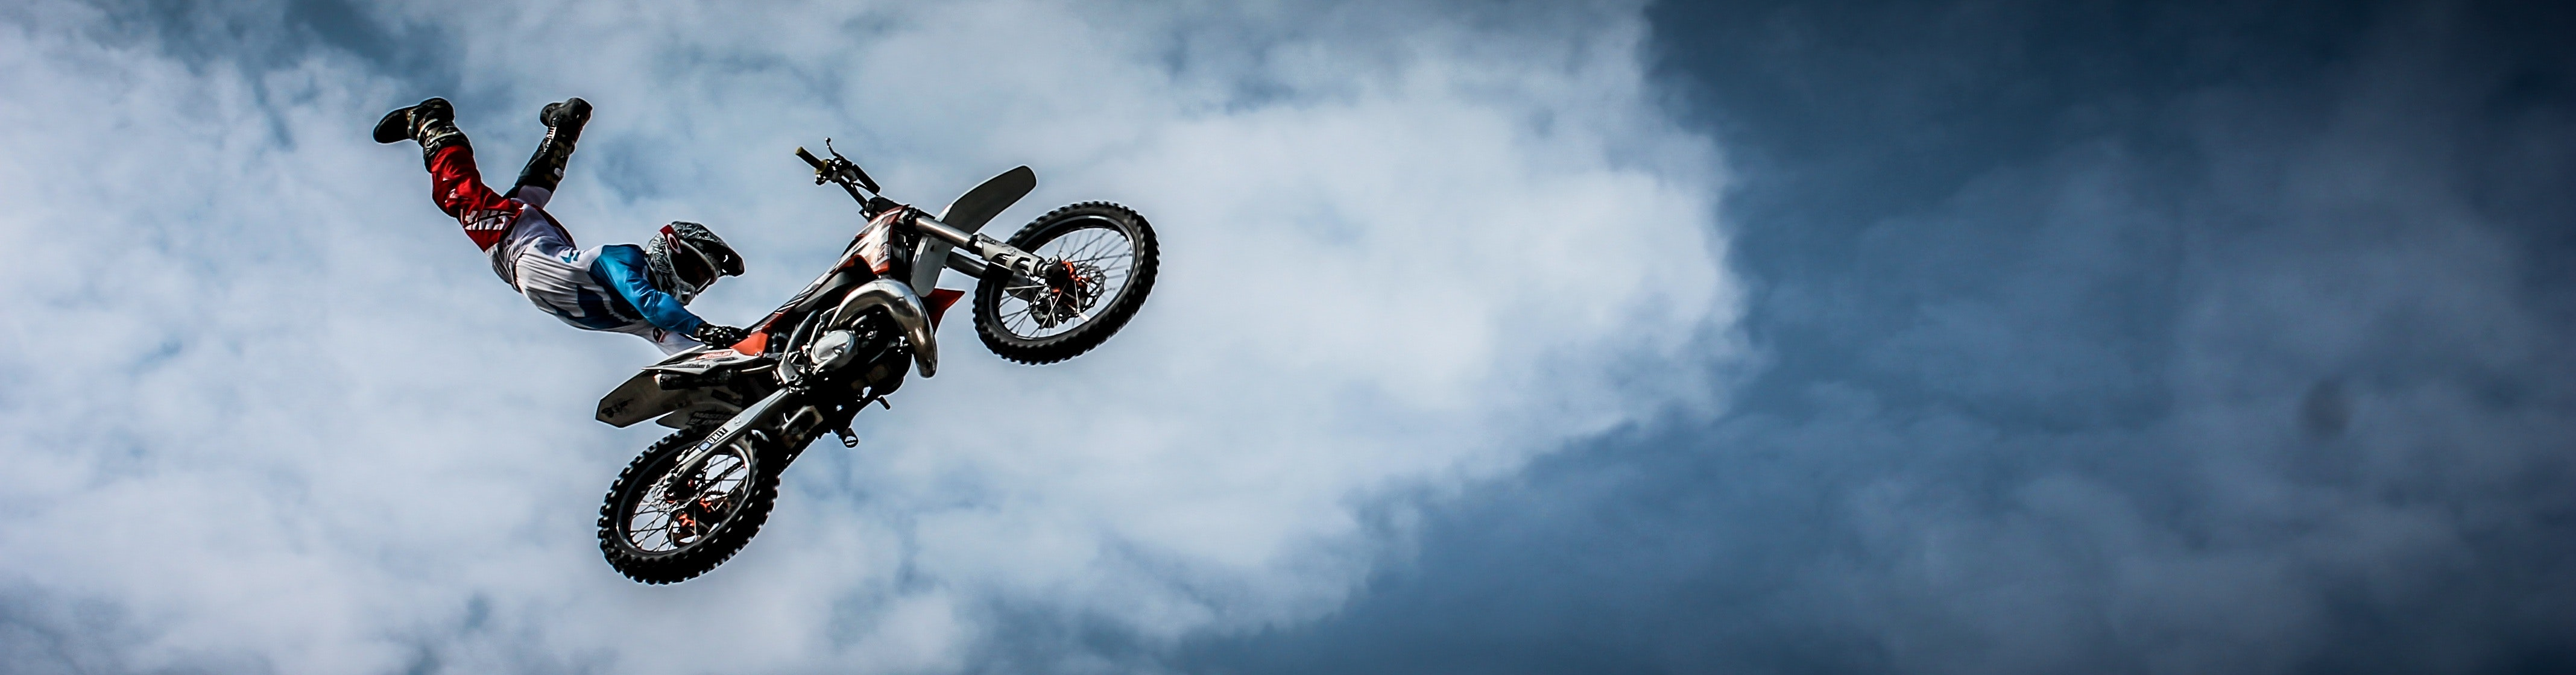 Man with off road motorcycle doing tricks photo